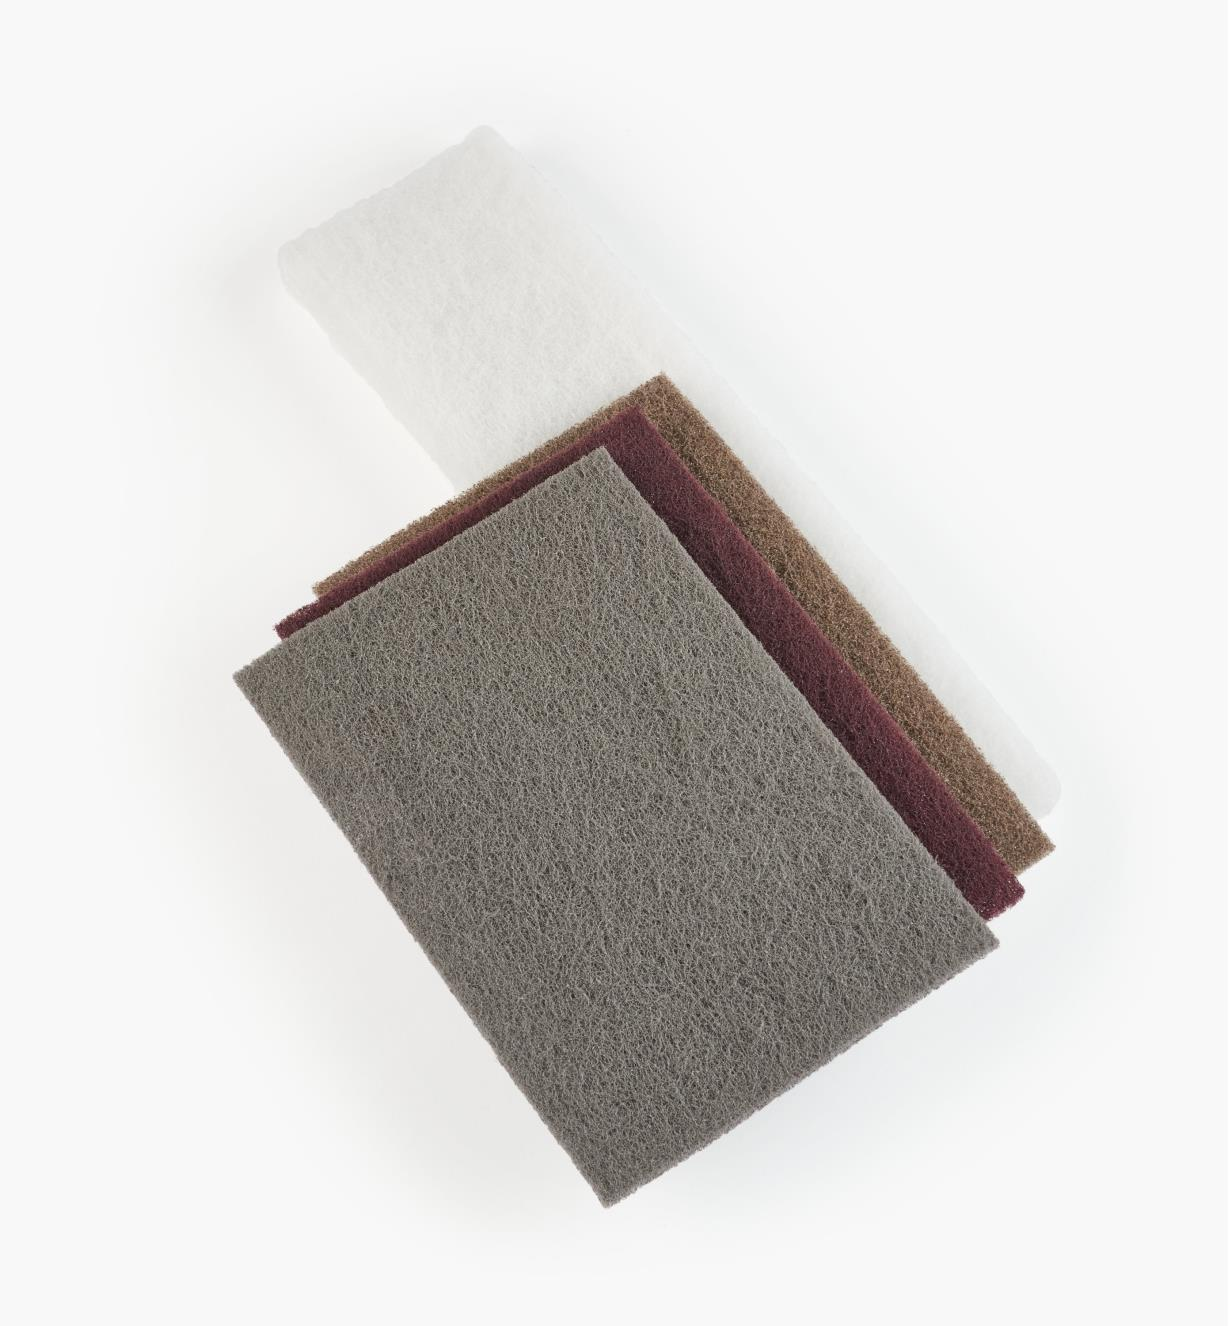 54K1003 - Sample Set of 4 3M Rubbing Pads